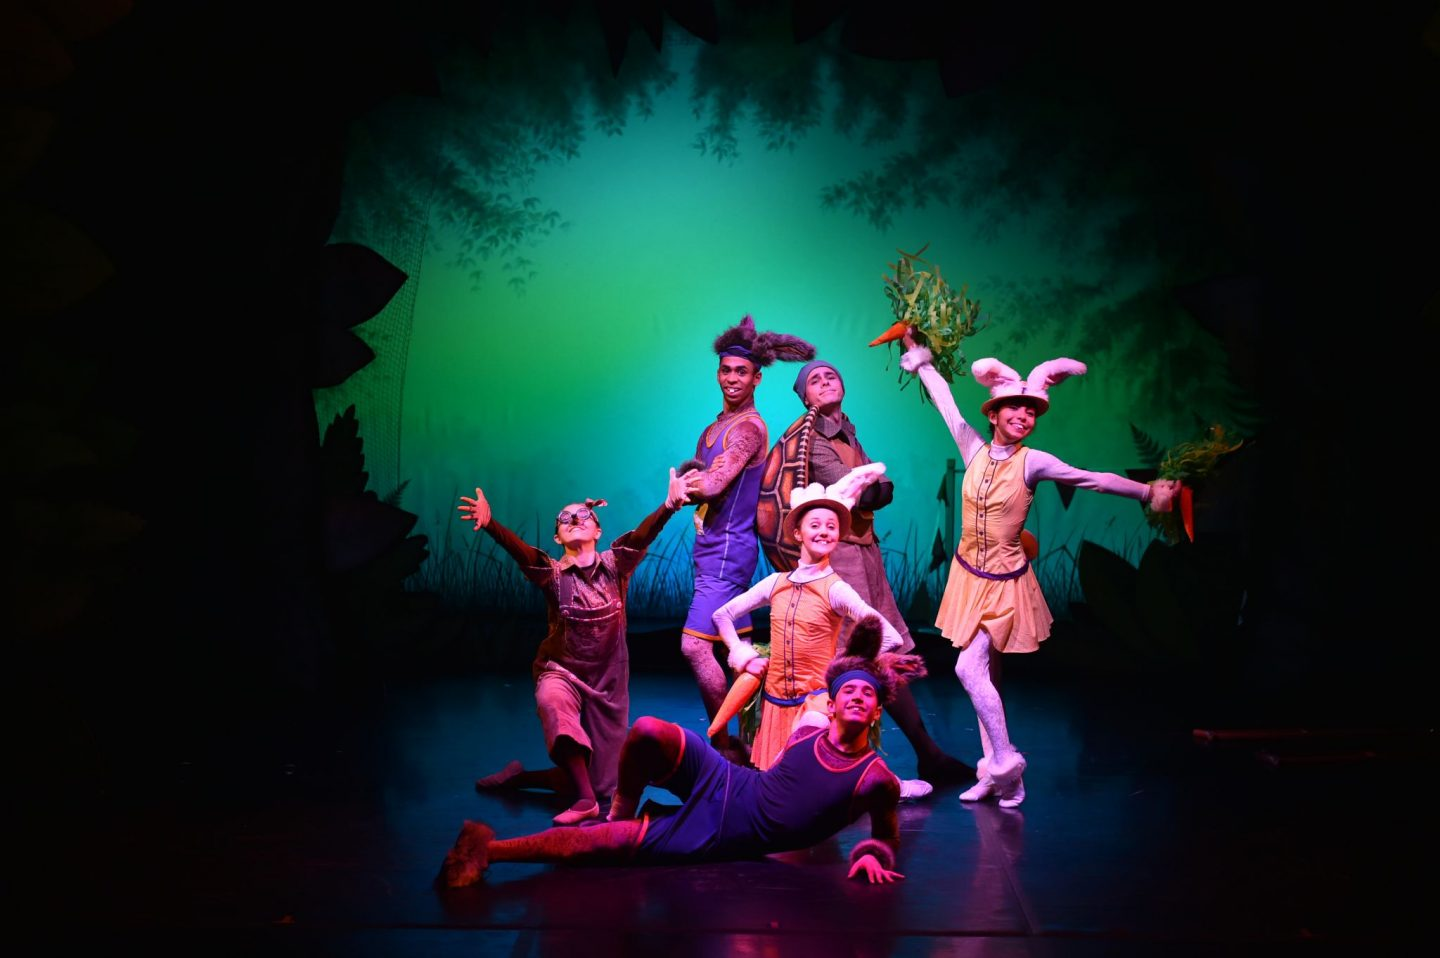 ", Northern Ballet Makes Cinema Debut With Children's Ballet ""Tortoise and the Hare"" This Saturday"